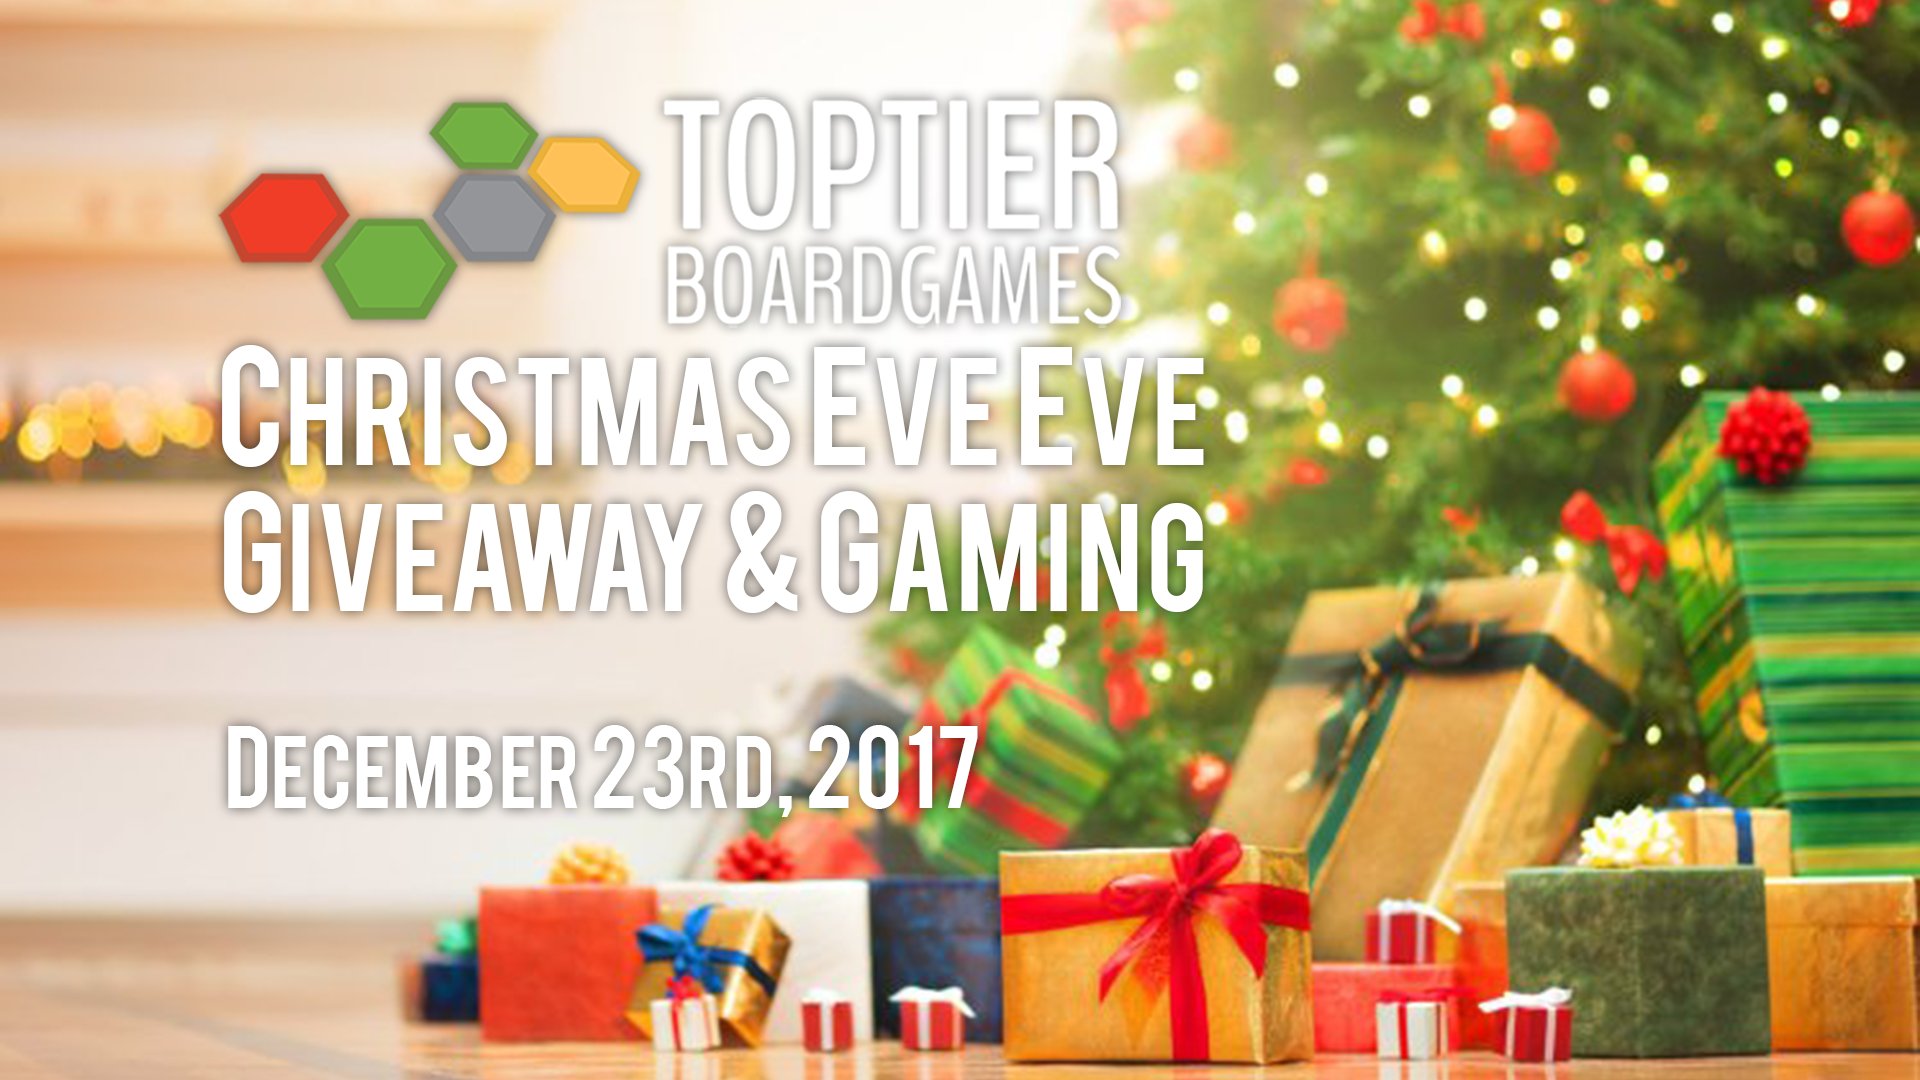 Christmas Eve Eve Event Image.png